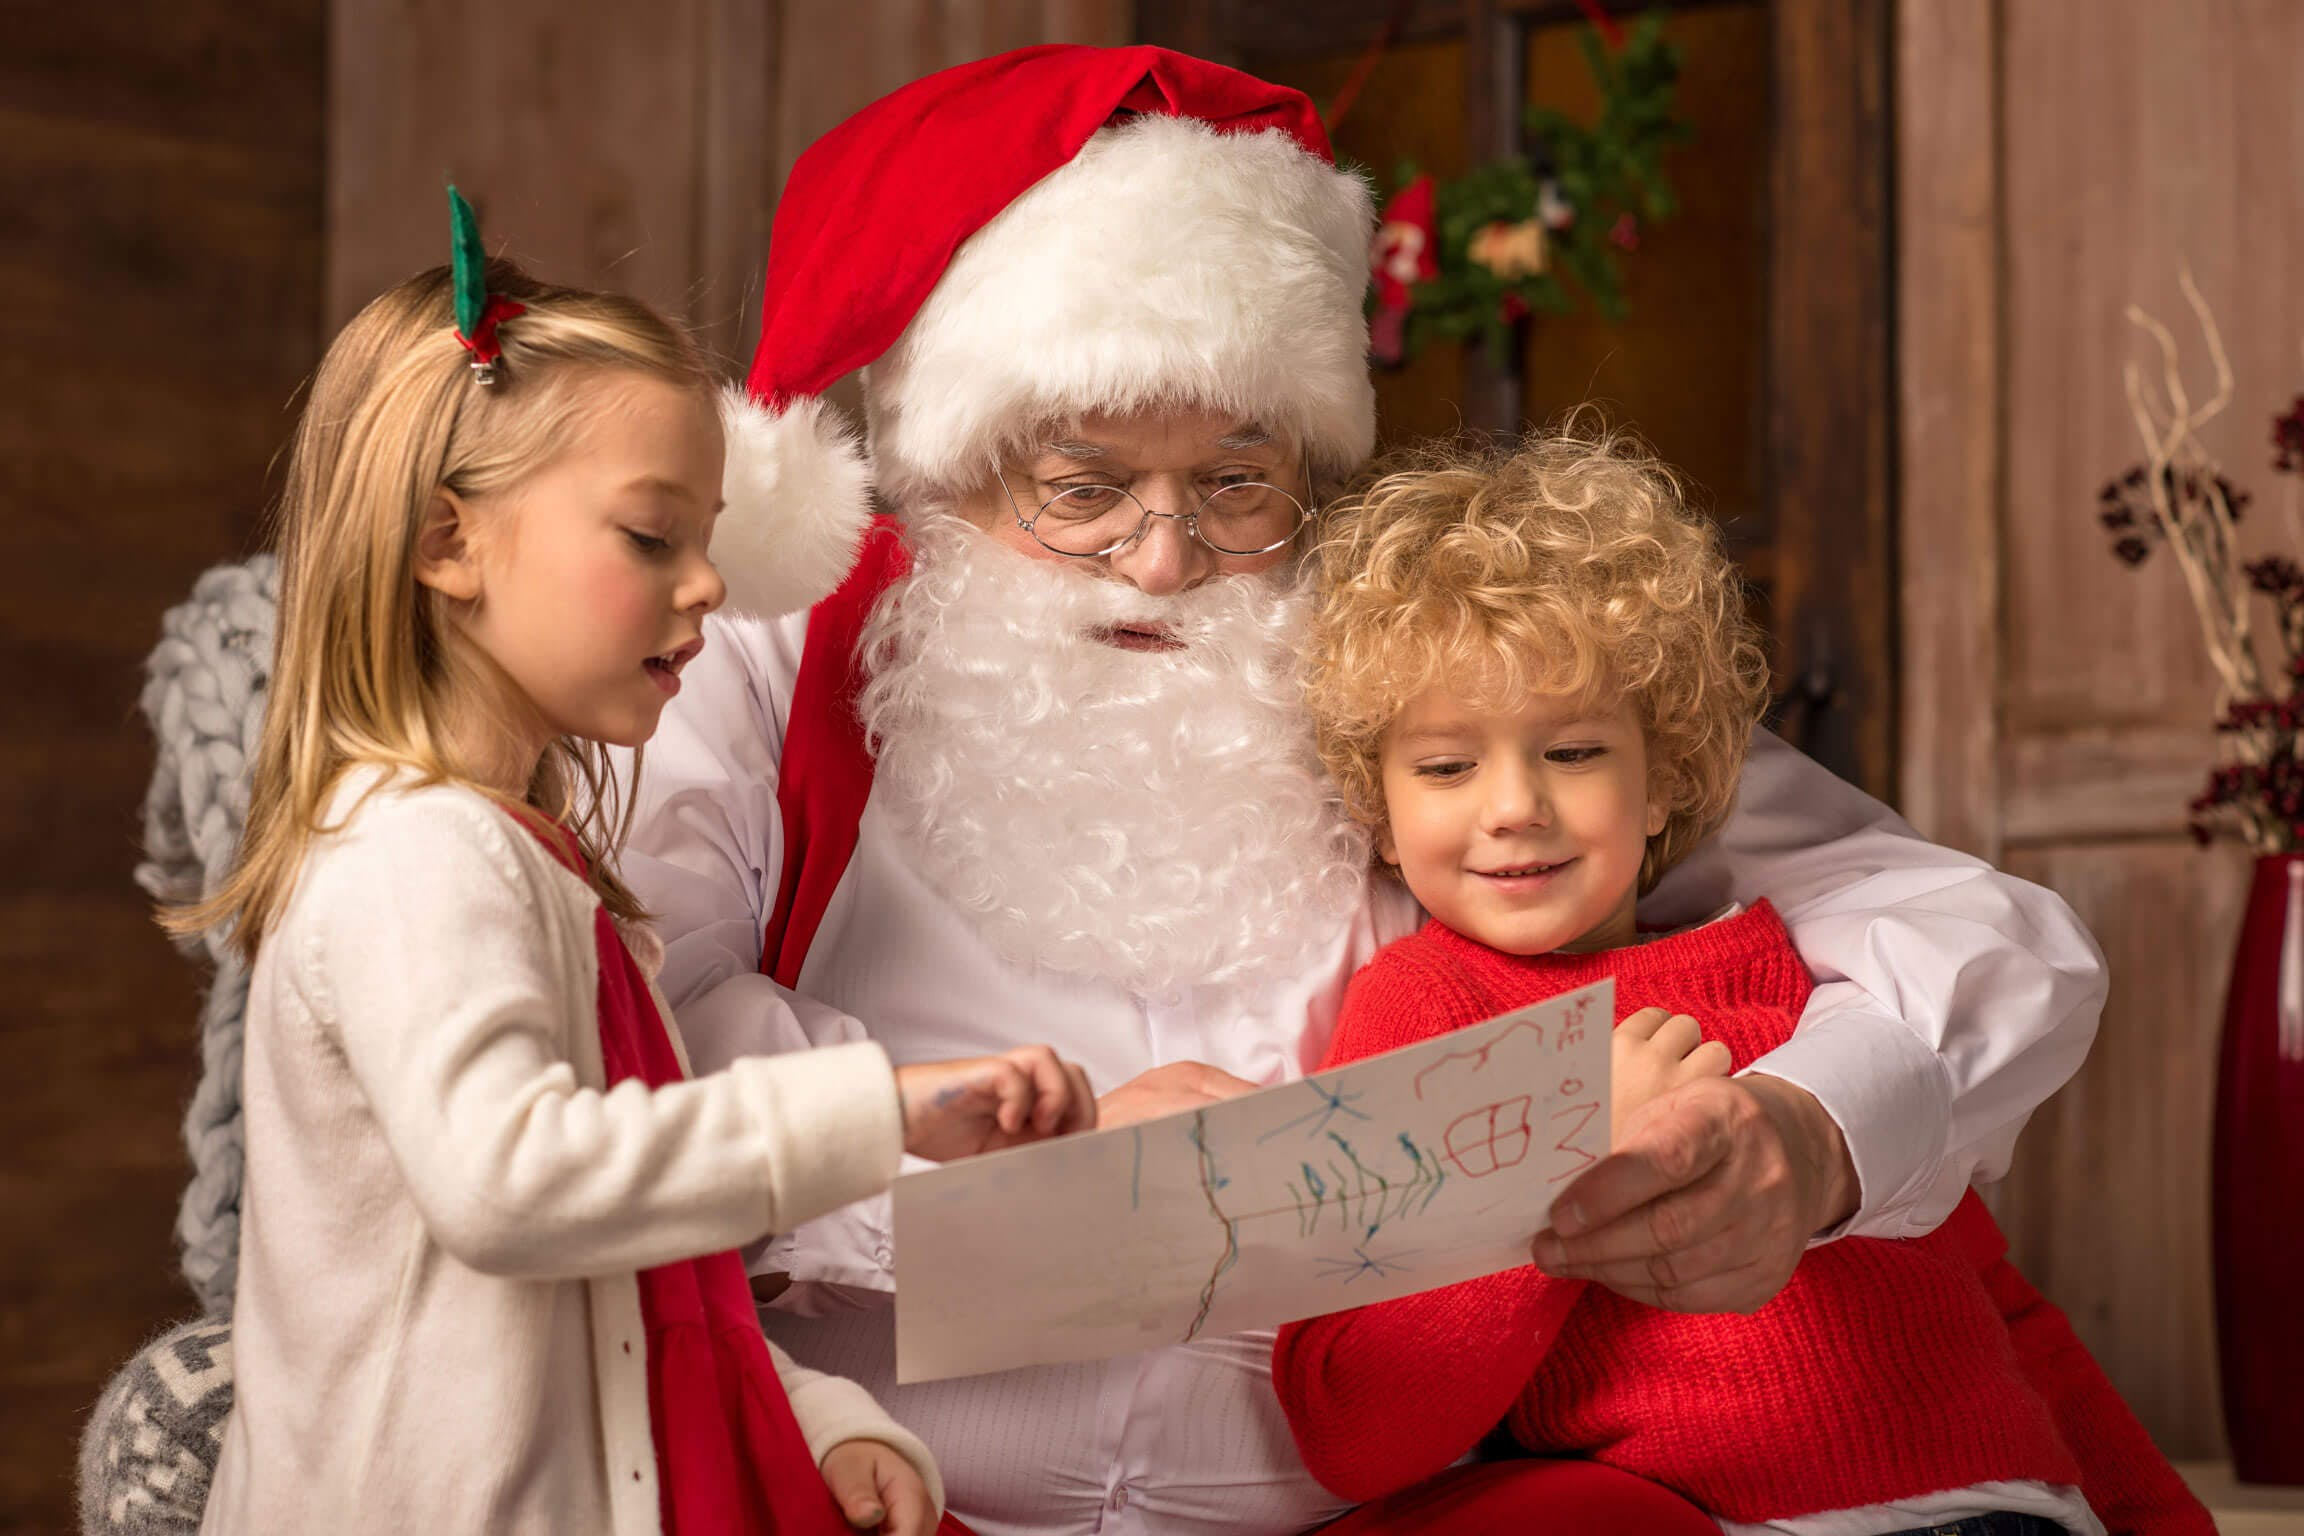 brings-kids-to-take-pictures-with-santa-fort-bend-county-texas